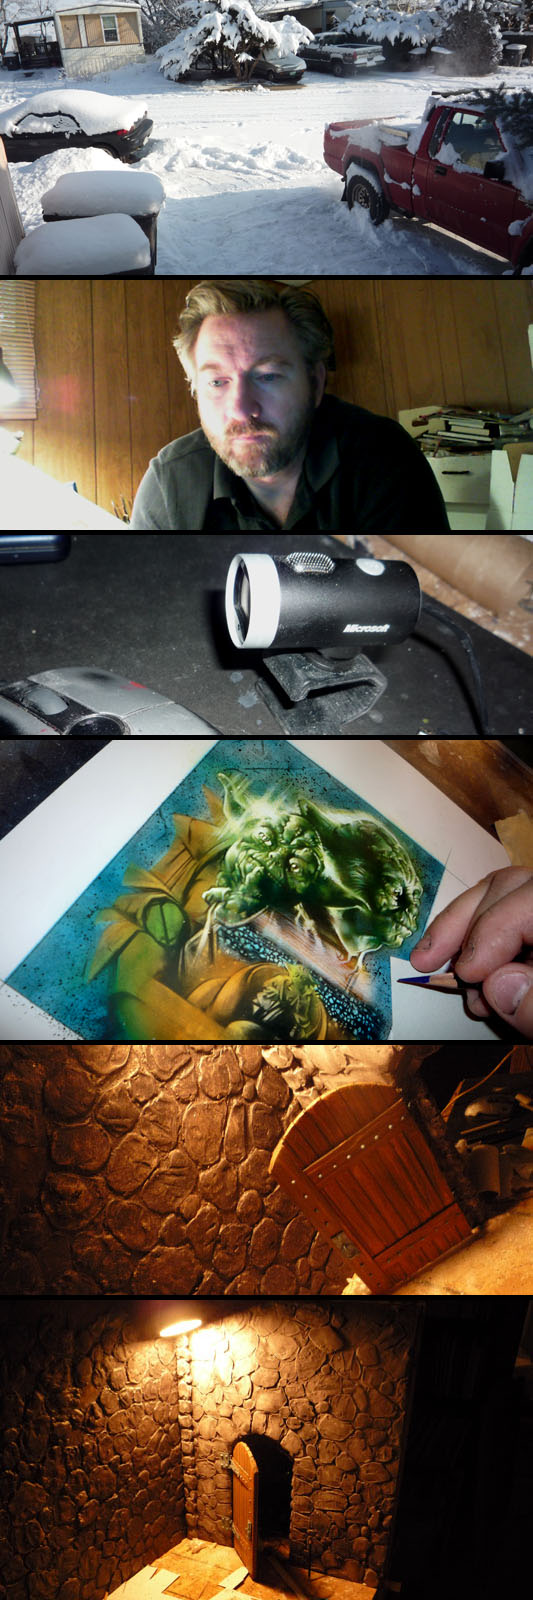 Blizzard, Jeff Lafferty, Lifecam, Yoda Painting and Stop Motion Model By Jeff Lafferty